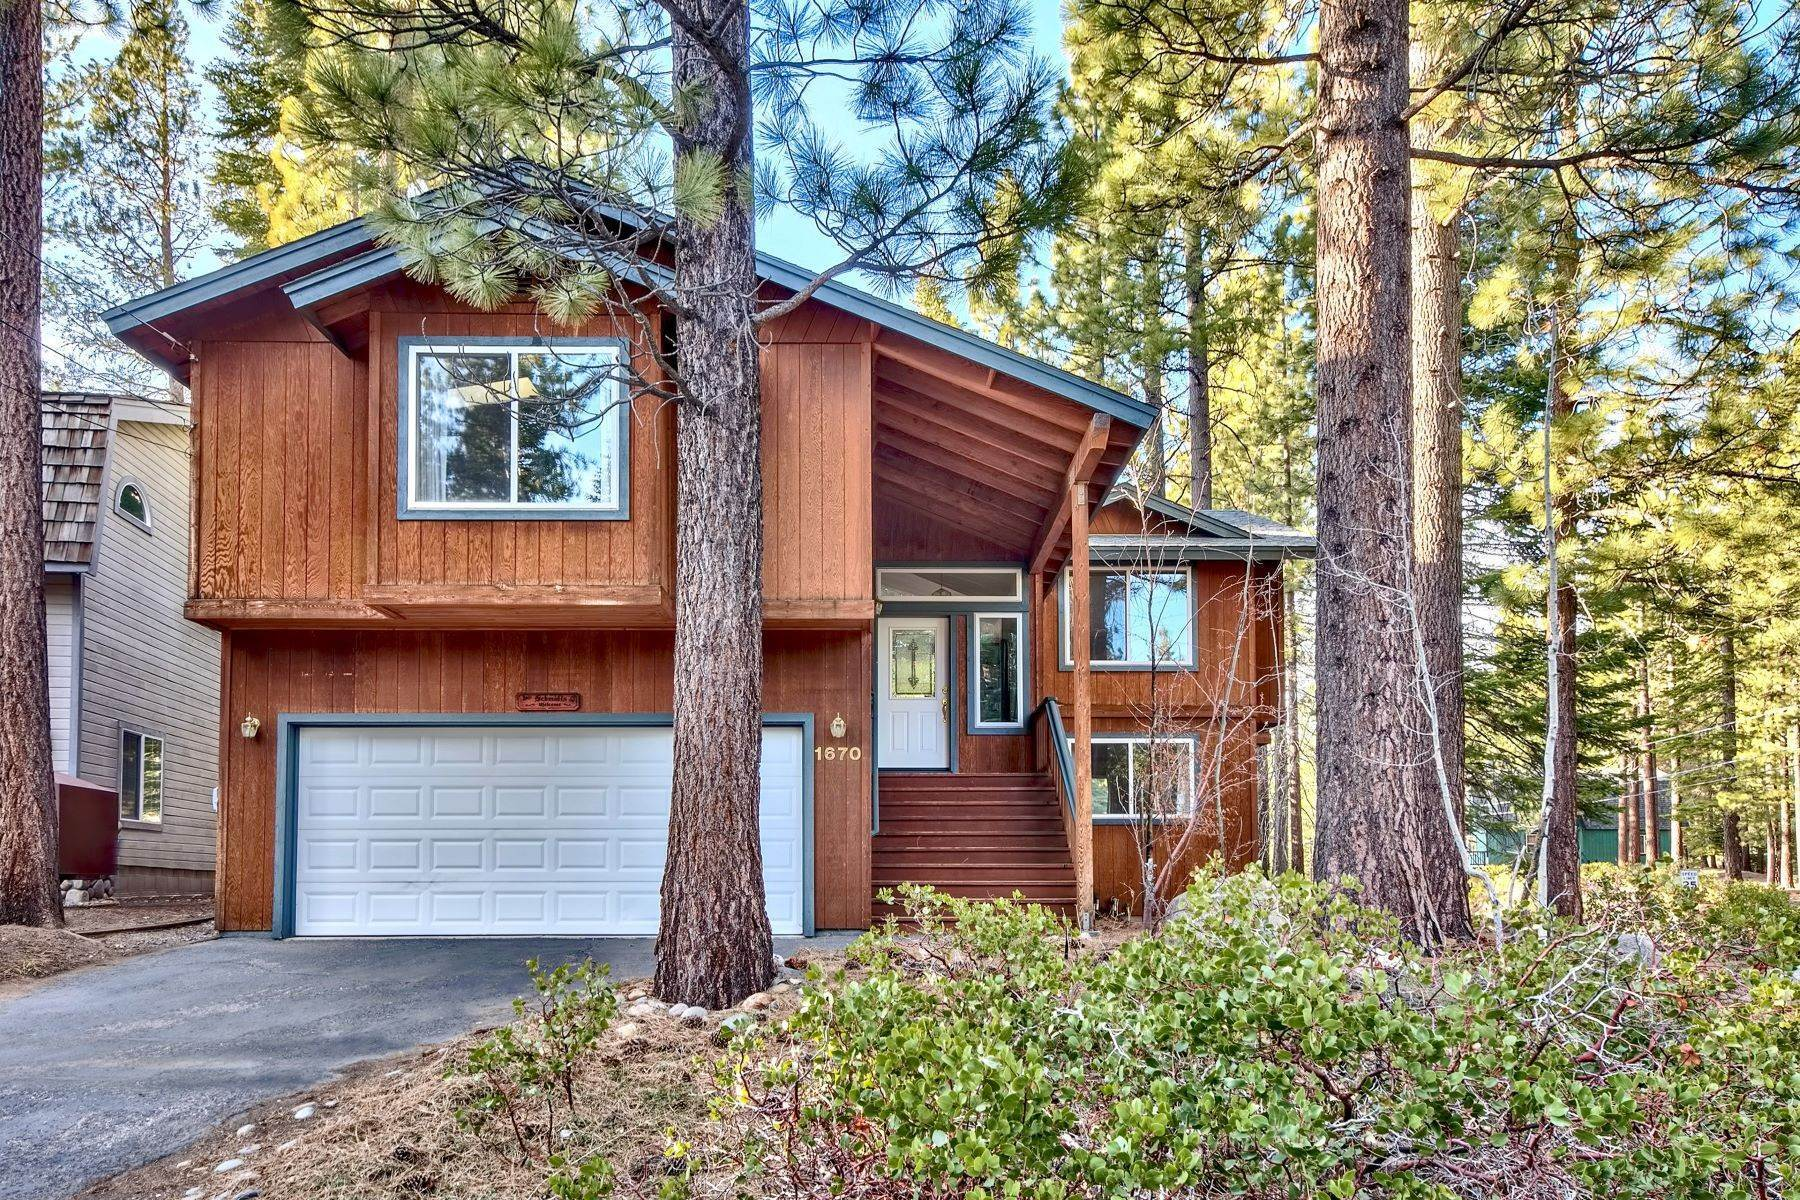 Single Family Homes for Active at Mountain Living 1670 Nadowa St. South Lake Tahoe, California 96150 United States